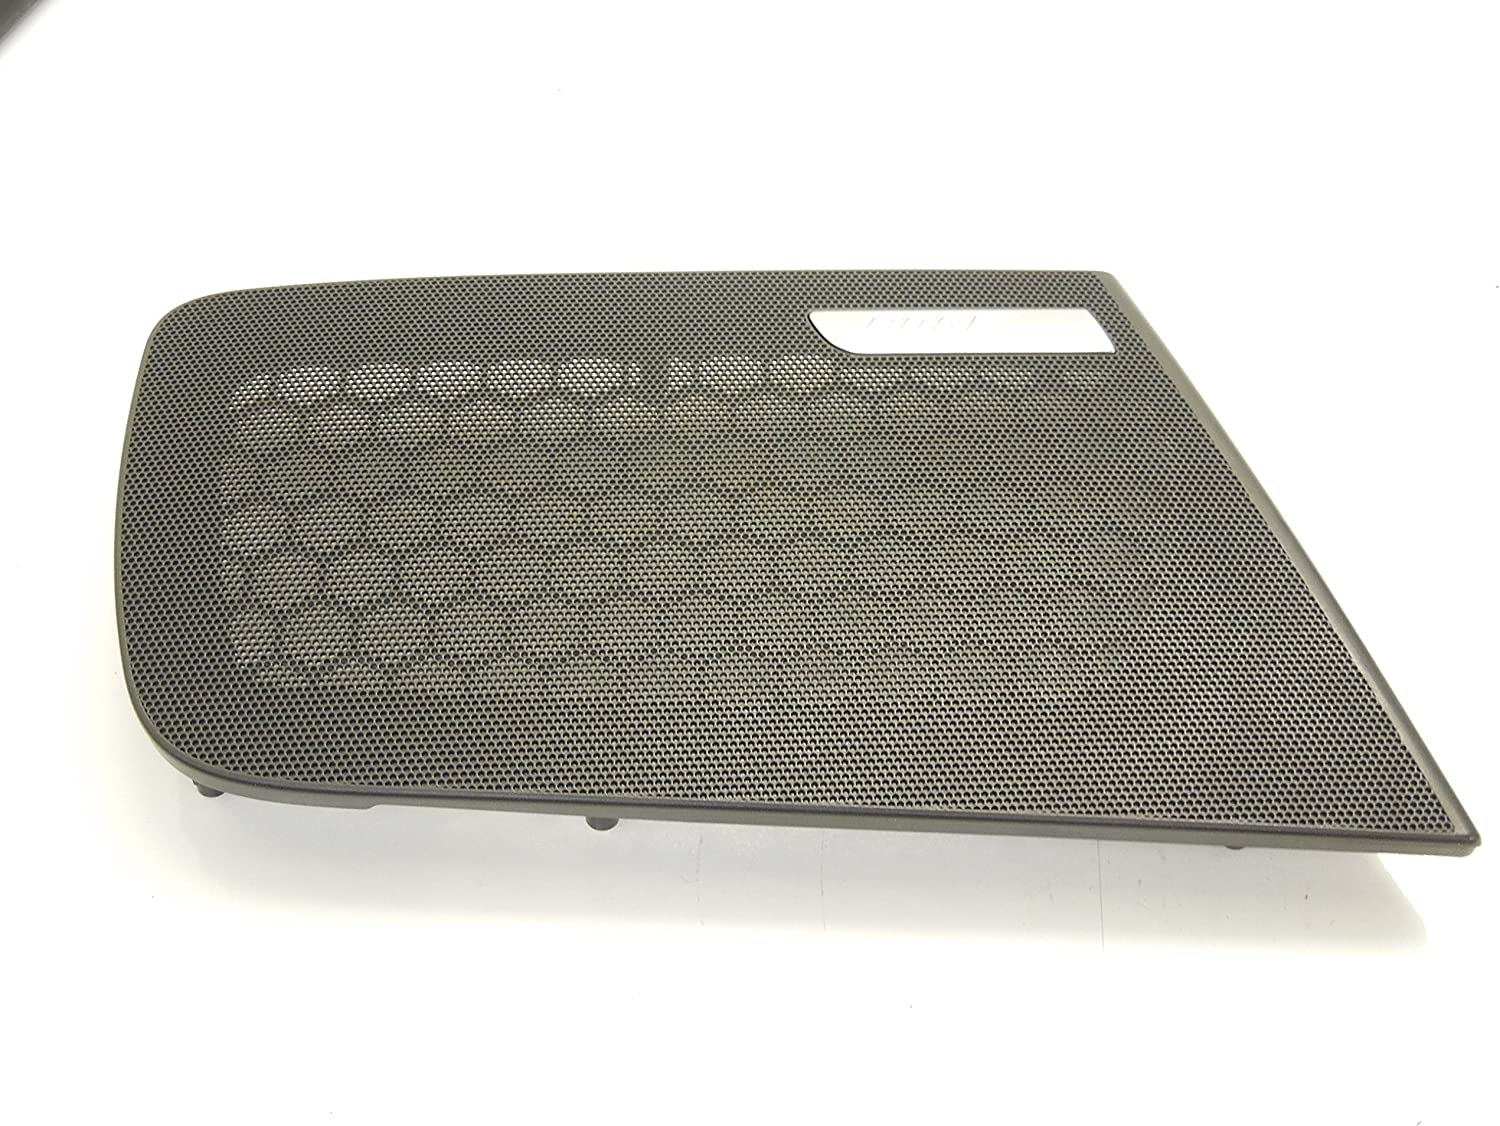 Audi A6 C6 Front OS Right Door Speaker Grill BOSE Black New Genuine